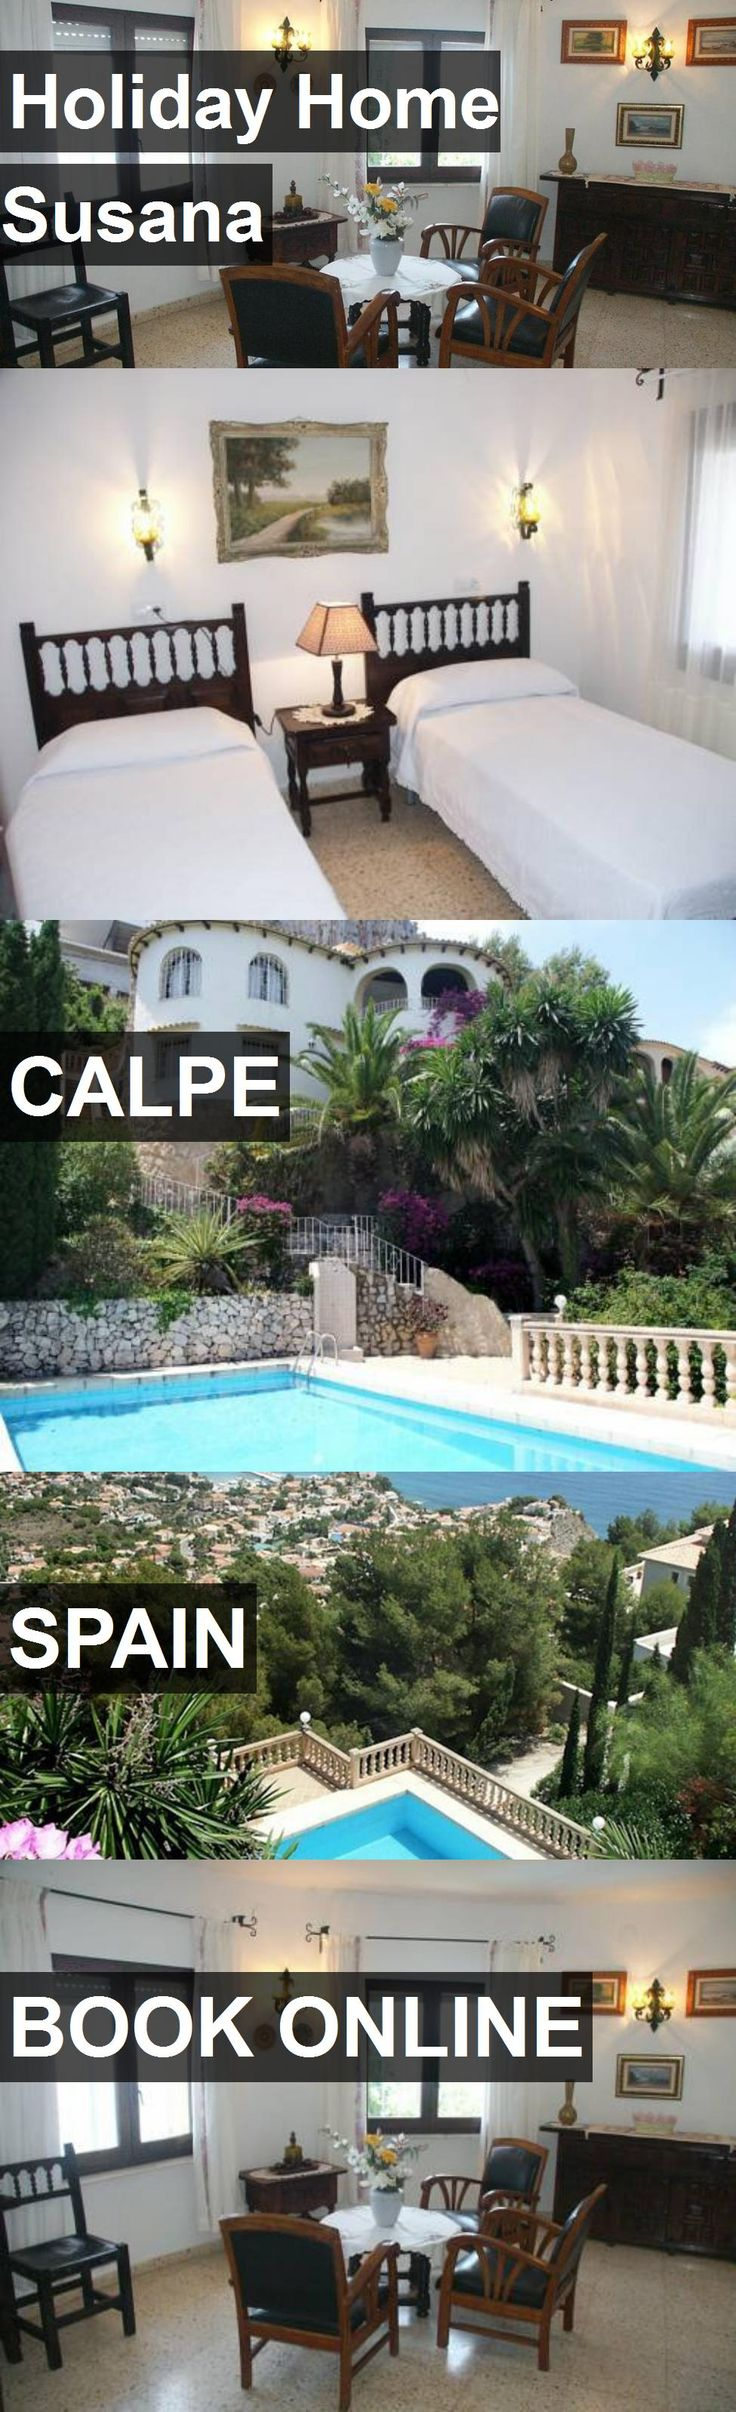 Hotel Holiday Home Susana in Calpe, Spain. For more information, photos, reviews and best prices please follow the link. #Spain #Calpe #travel #vacation #hotel